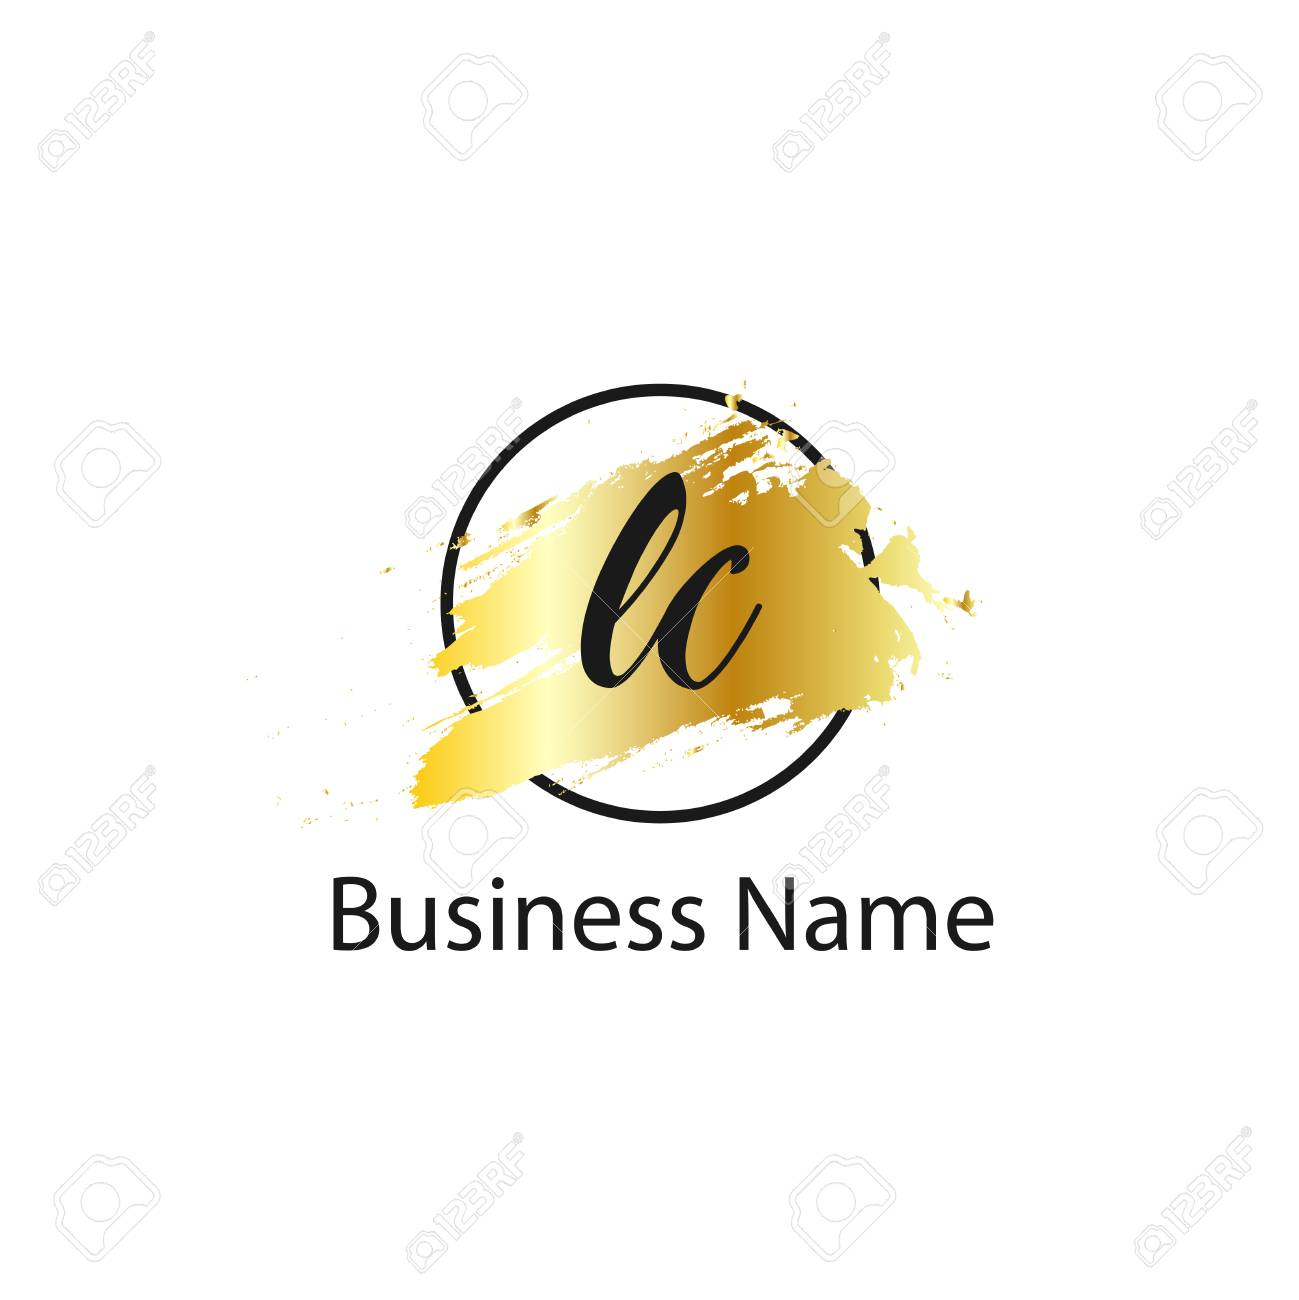 Initial Letter LC Logo Template Design - 108065026